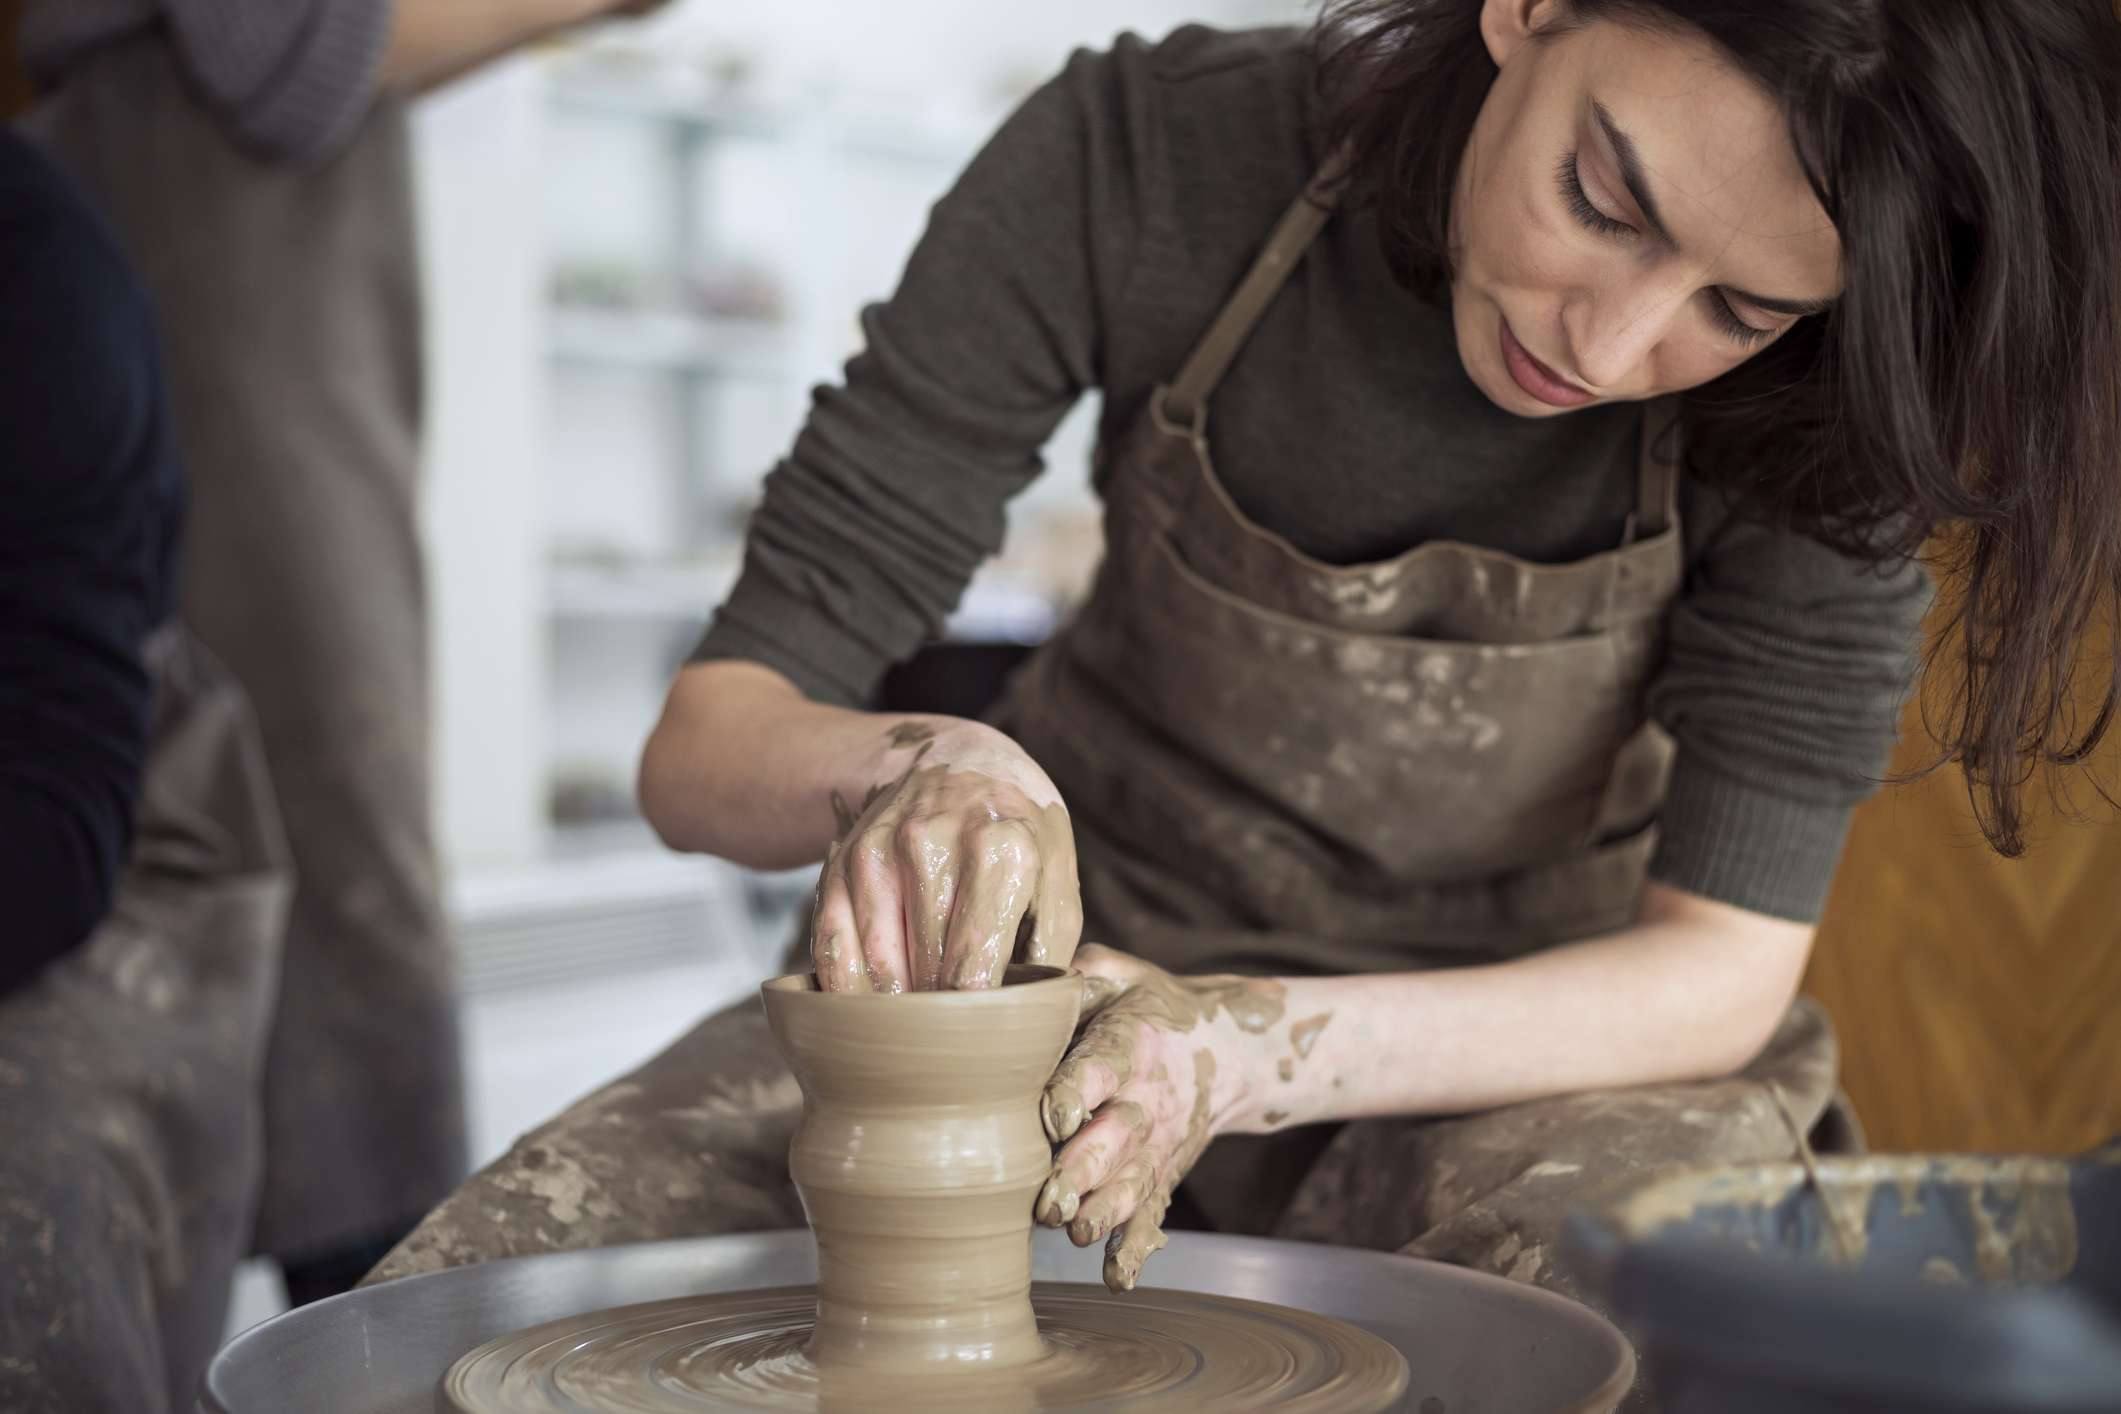 Woman works at pottery wheel